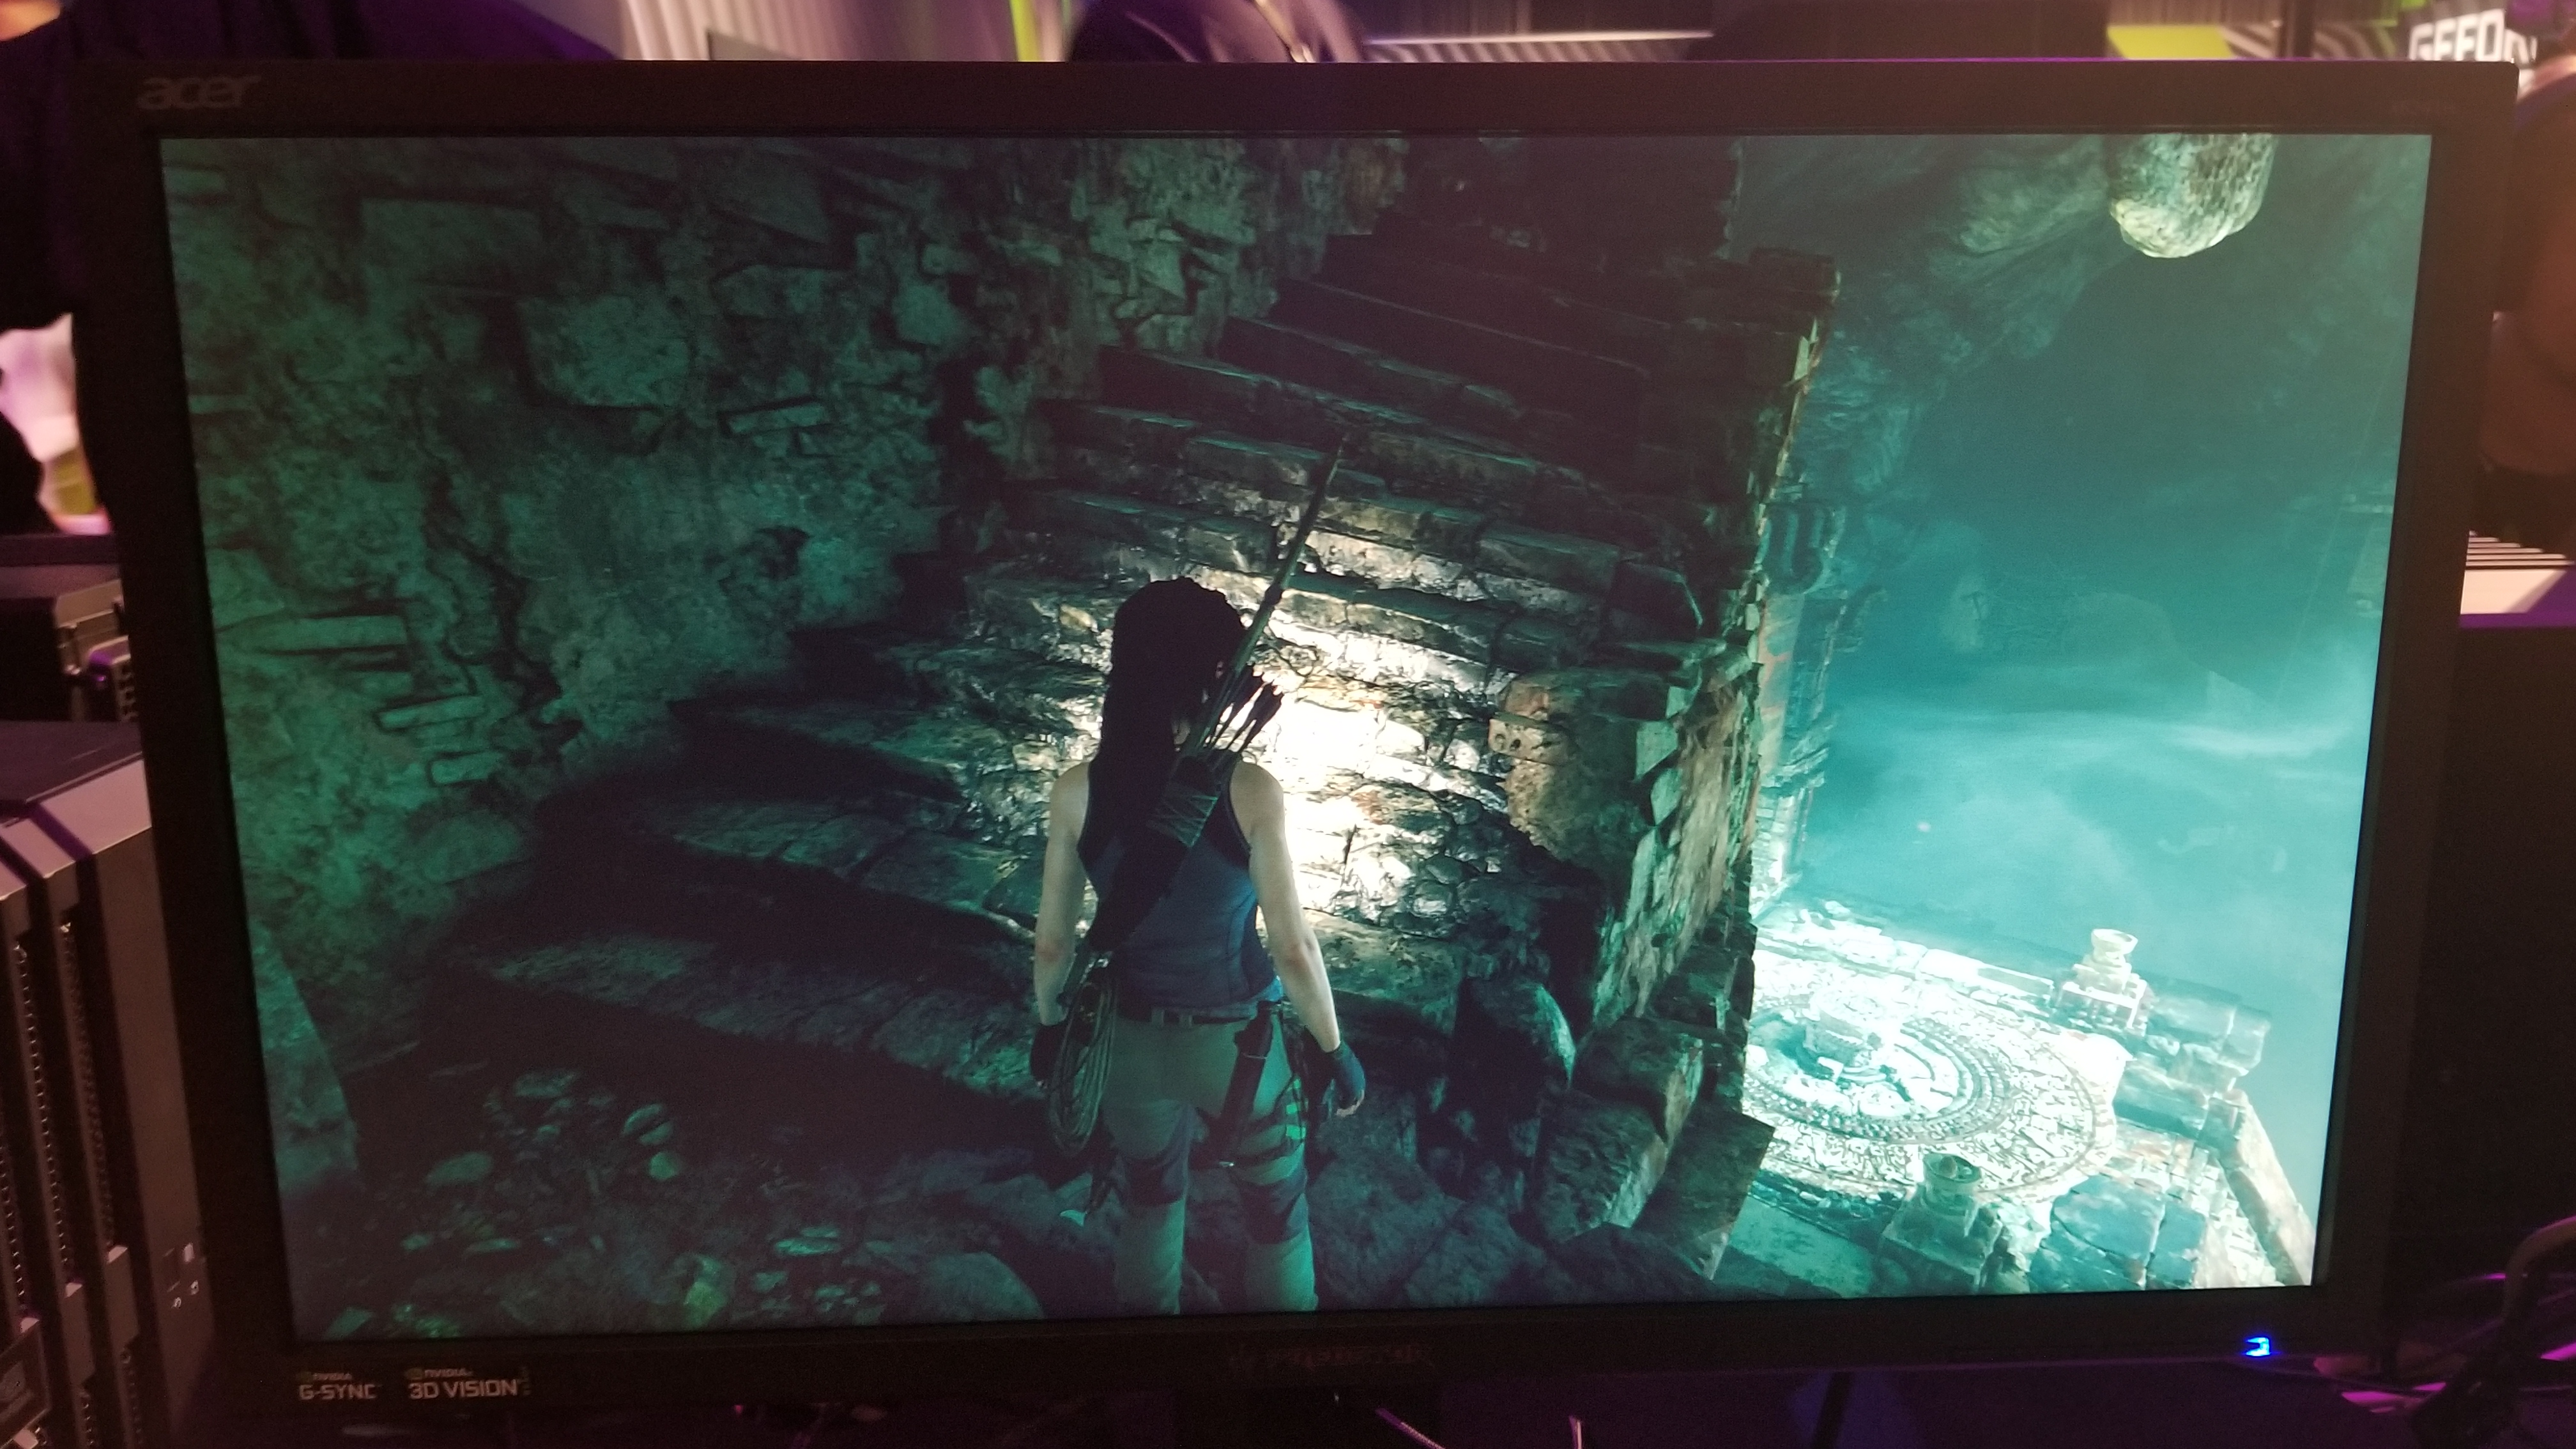 Hands-on with the GeForce RTX 2080 Ti: Real-time Raytracing in Games